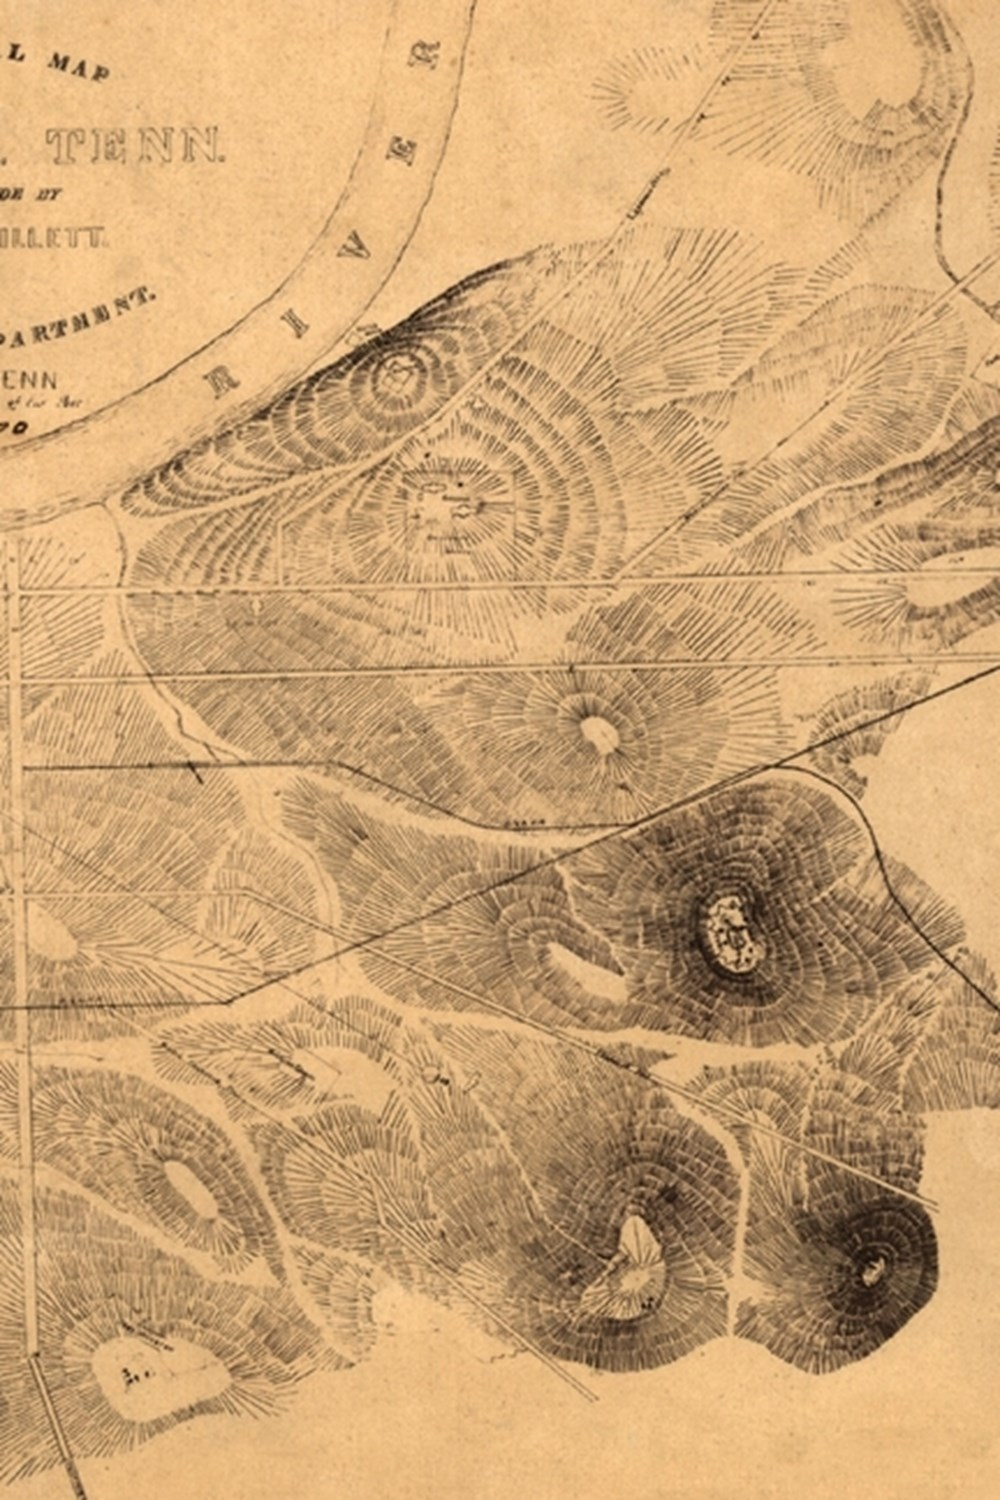 19th Century Topographical Map of Nashville, Tennessee - A Poetose Notebook / Journal / Diary (50 pa